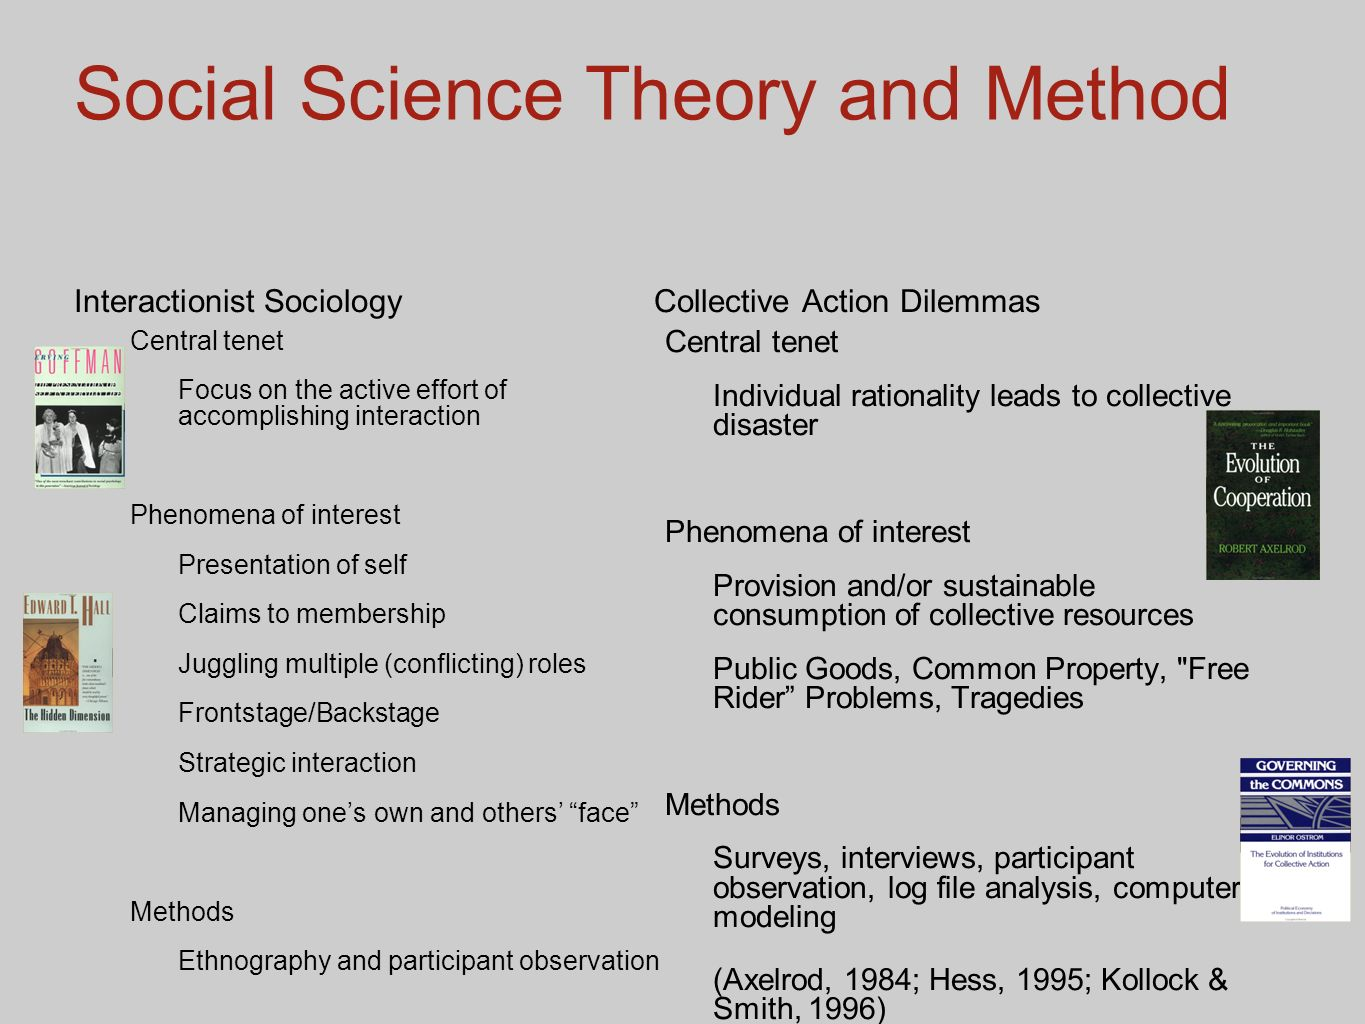 Social Science Theory and Method